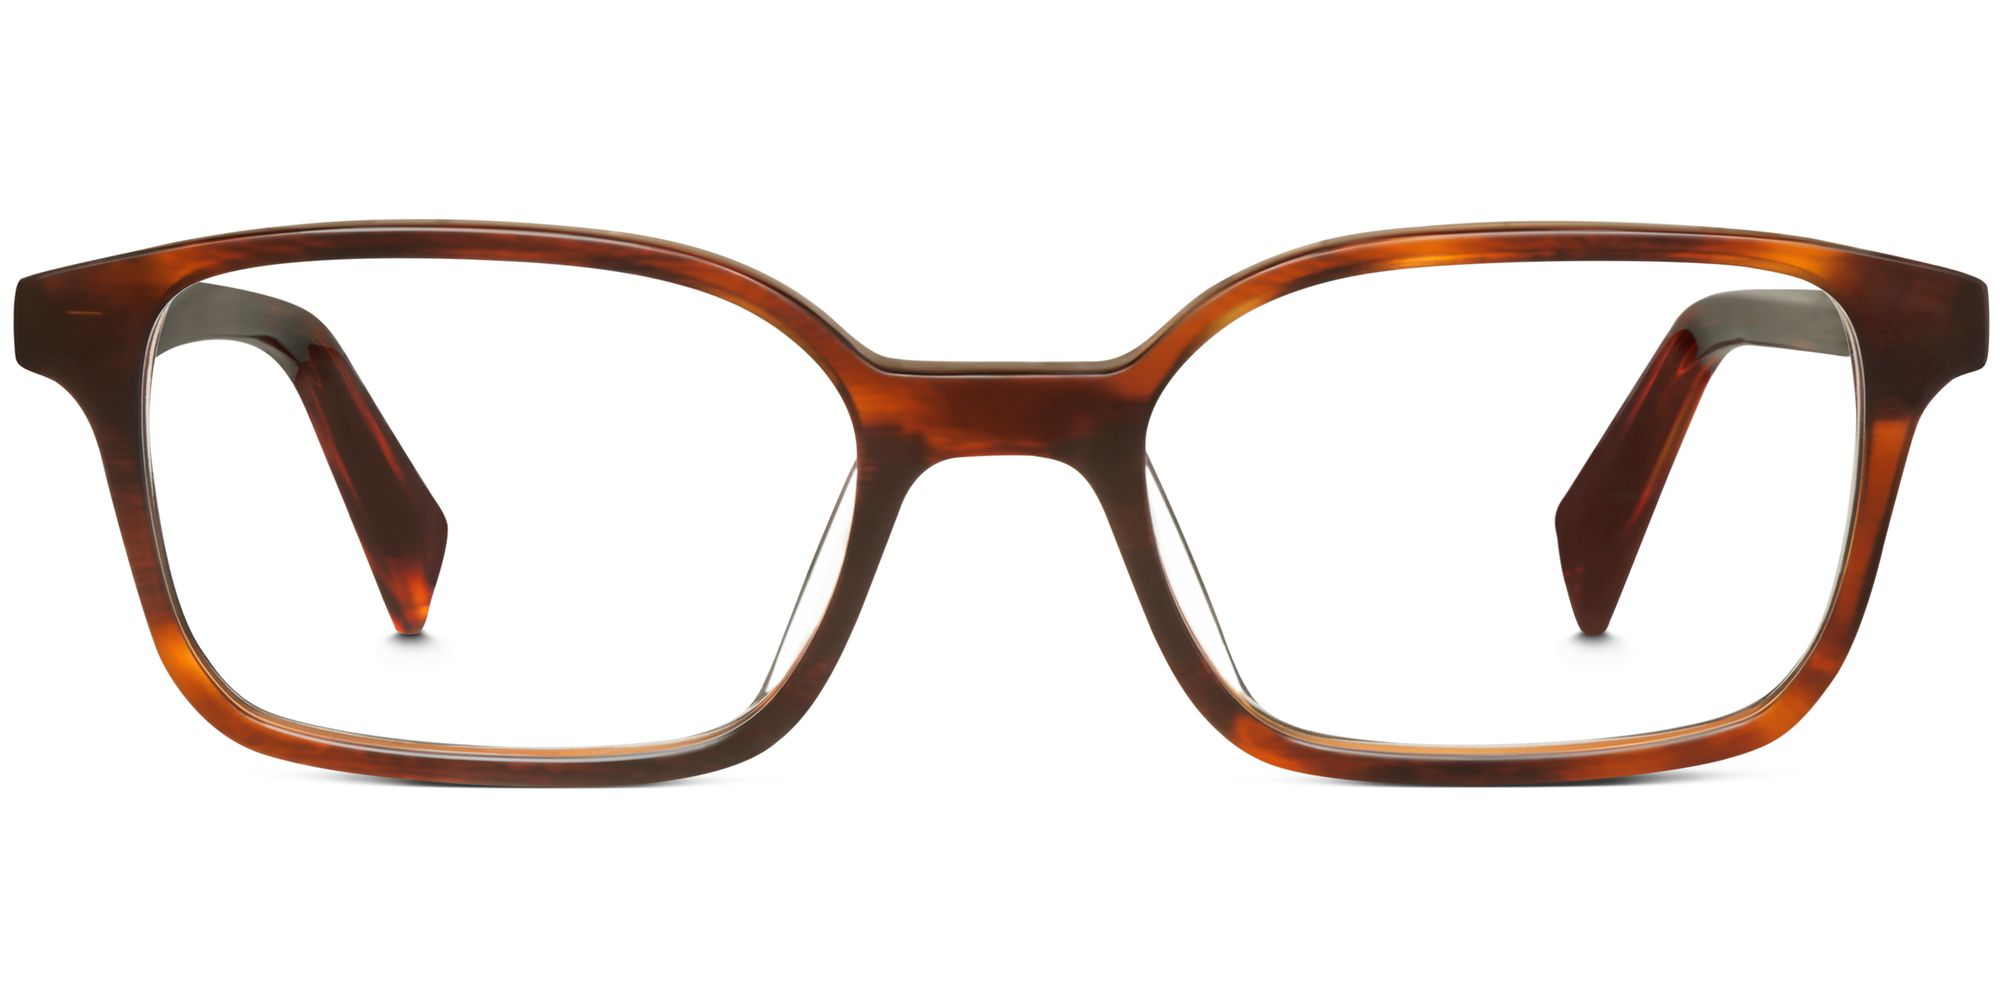 8eb032f298 Eyeglasses - Sugar Maple Eyewear glasses and contact lenses superstore